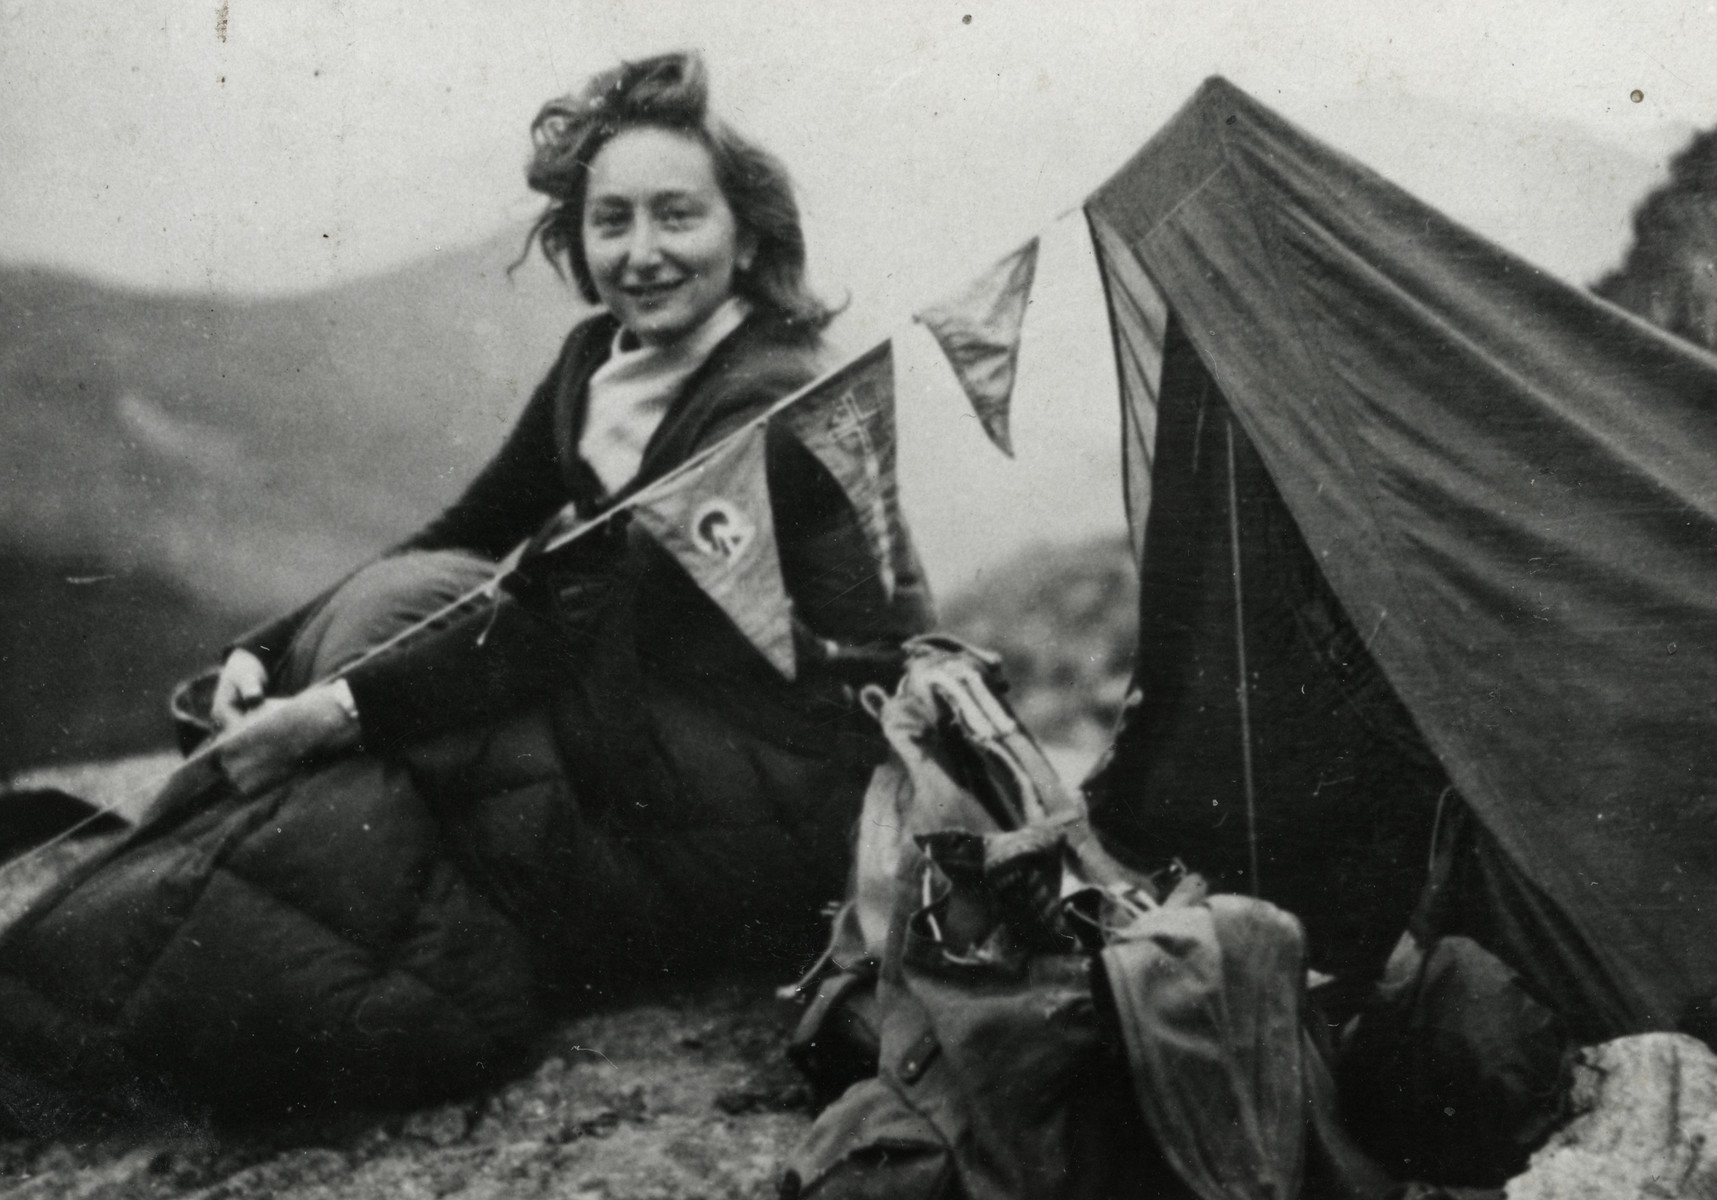 Close-up portrait of Jewish resister, Huguette Wahl, during a camping trip. The photo was taken a few weeks before she was killed in Auschwitz.